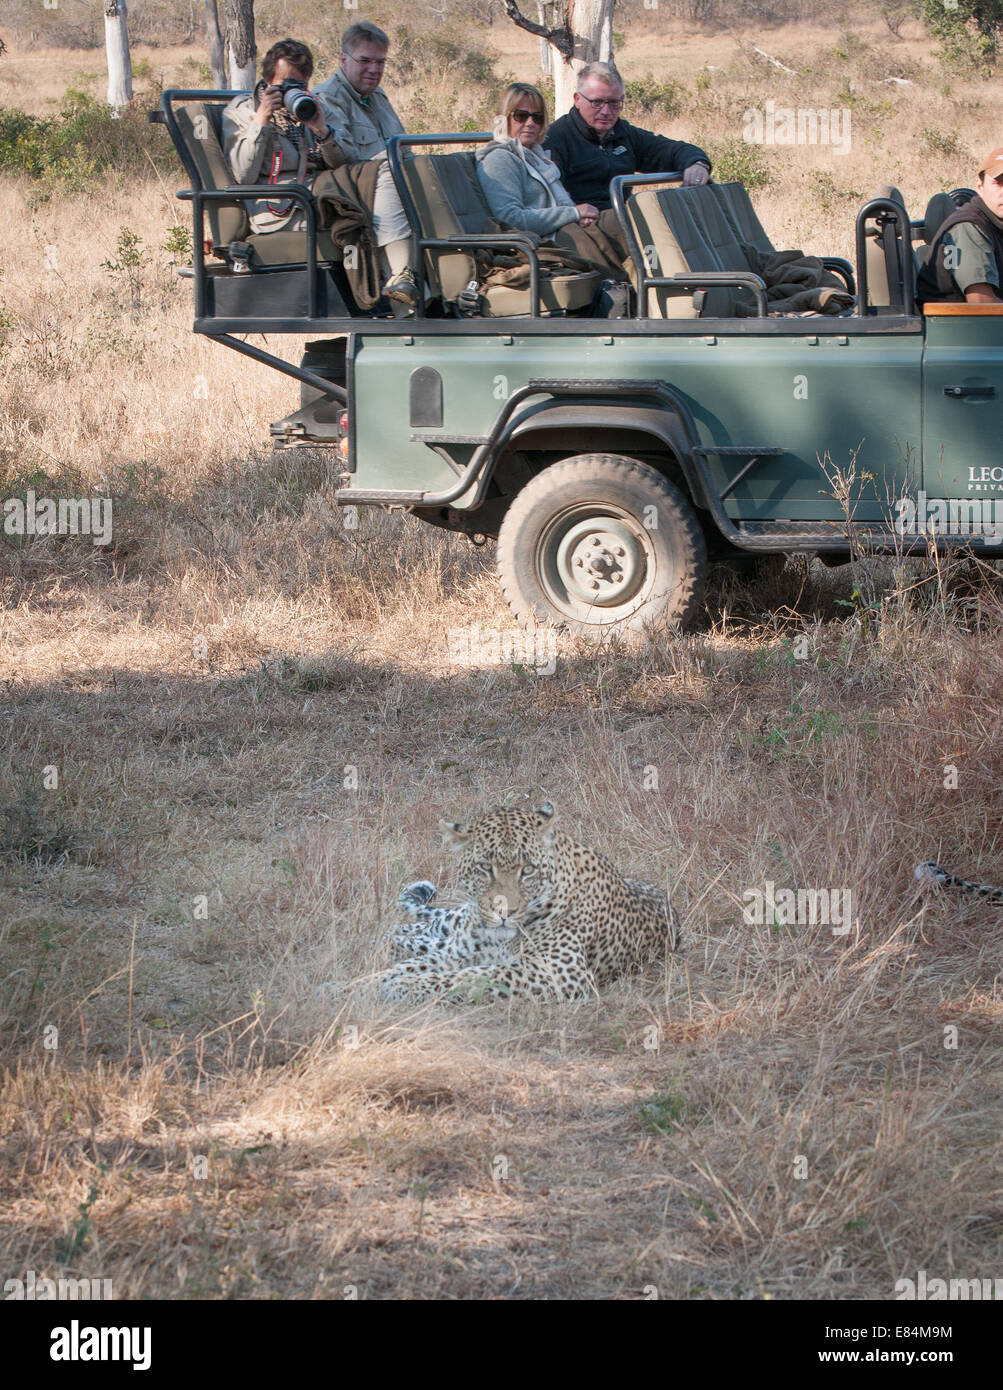 Leopard watched by tourists on safari, Sabi Sands Private Game Reserve, South Africa - Stock Image